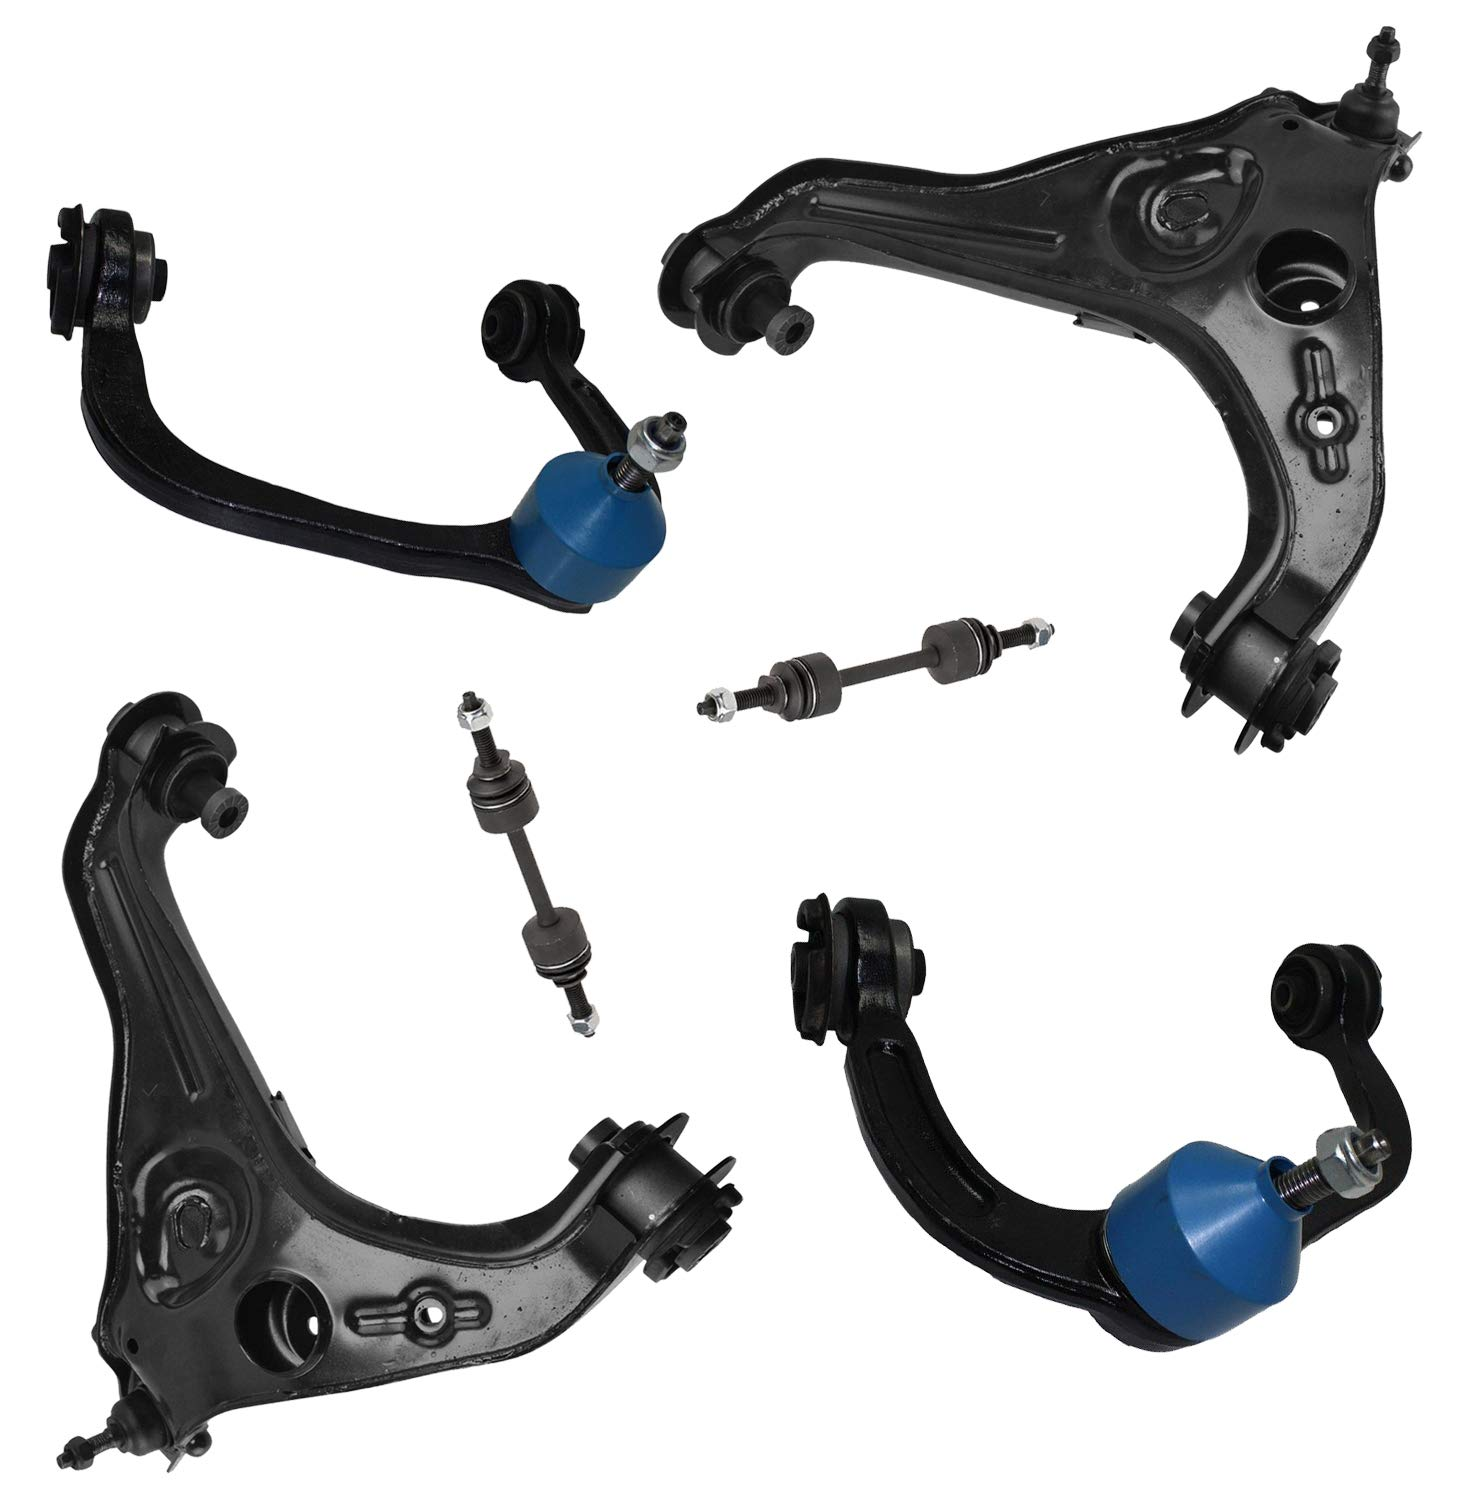 6pc Front Upper /& Lower Control Arms w//Ball Joints Sway Bar End Links for 2009 2010 2011 2012 2013 Ford F-150 4WD Exc Detroit Axle Raptor